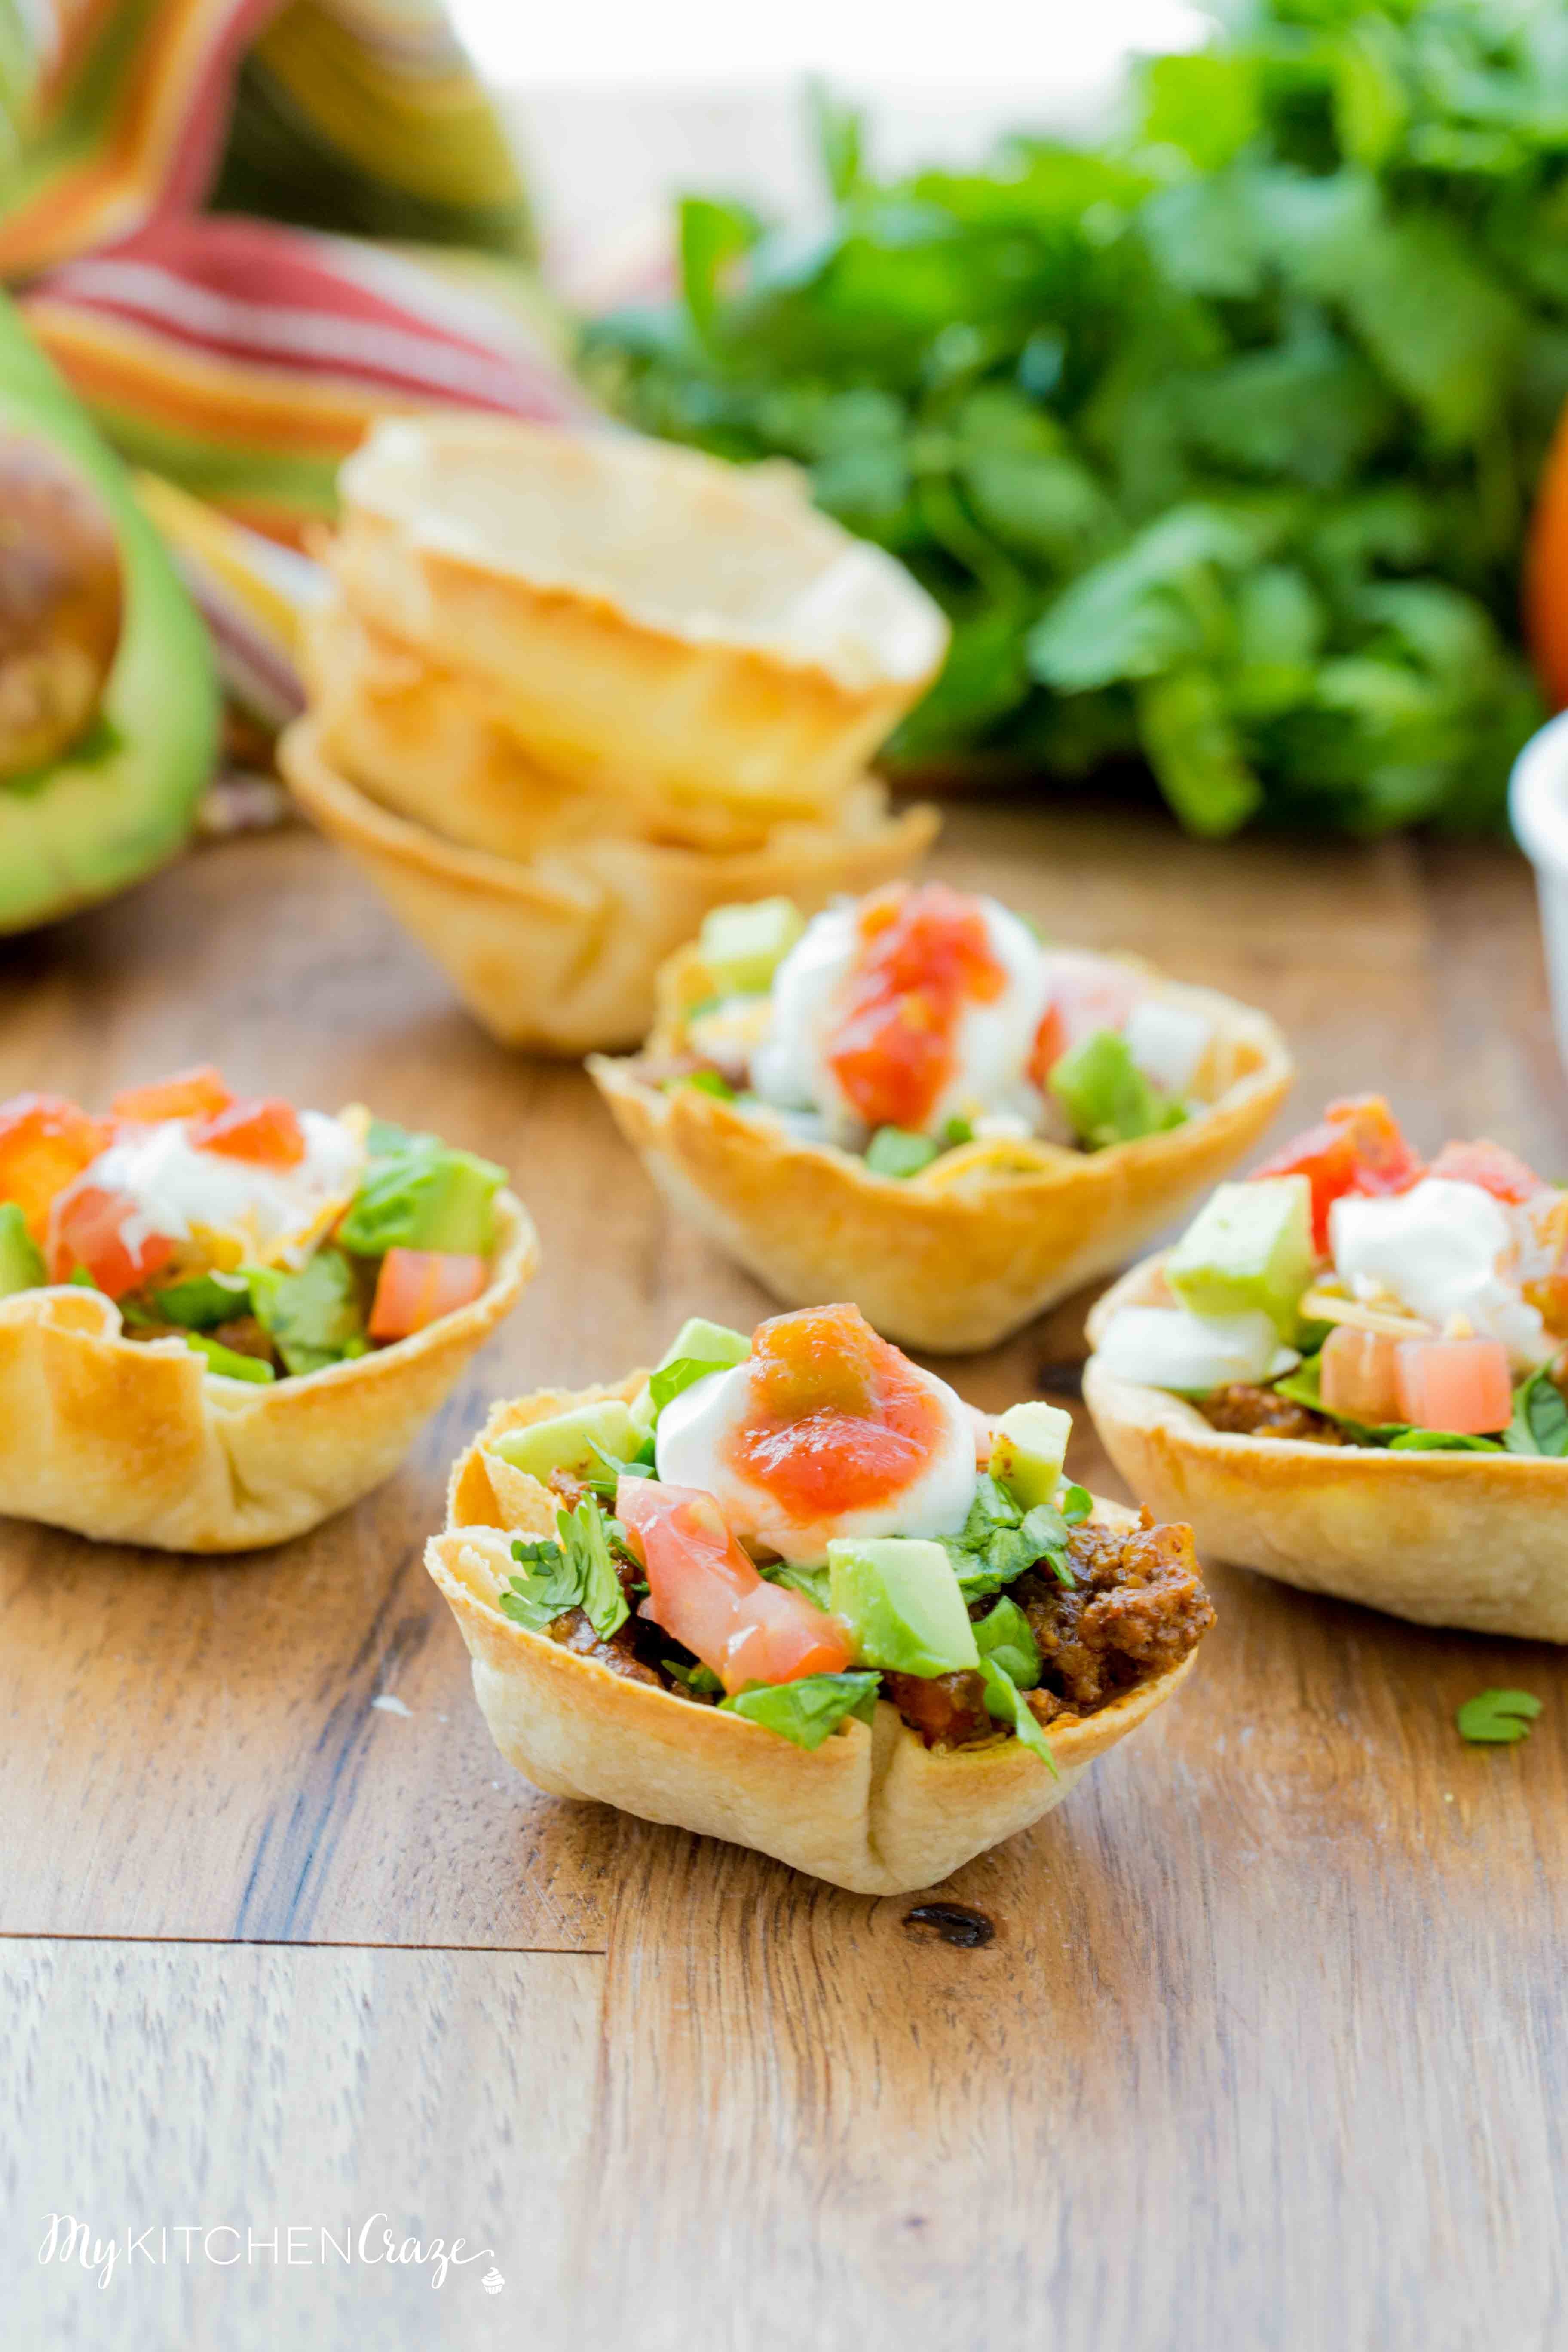 Taco Cups & Cheese Dip {Game Day Food} ~ Do you love to have snacks and appetizers on game day? Then you need to make these delicious Taco Cups and creamy Cheese Dip. Perfect foods to cheer on your favorite team. Go team!